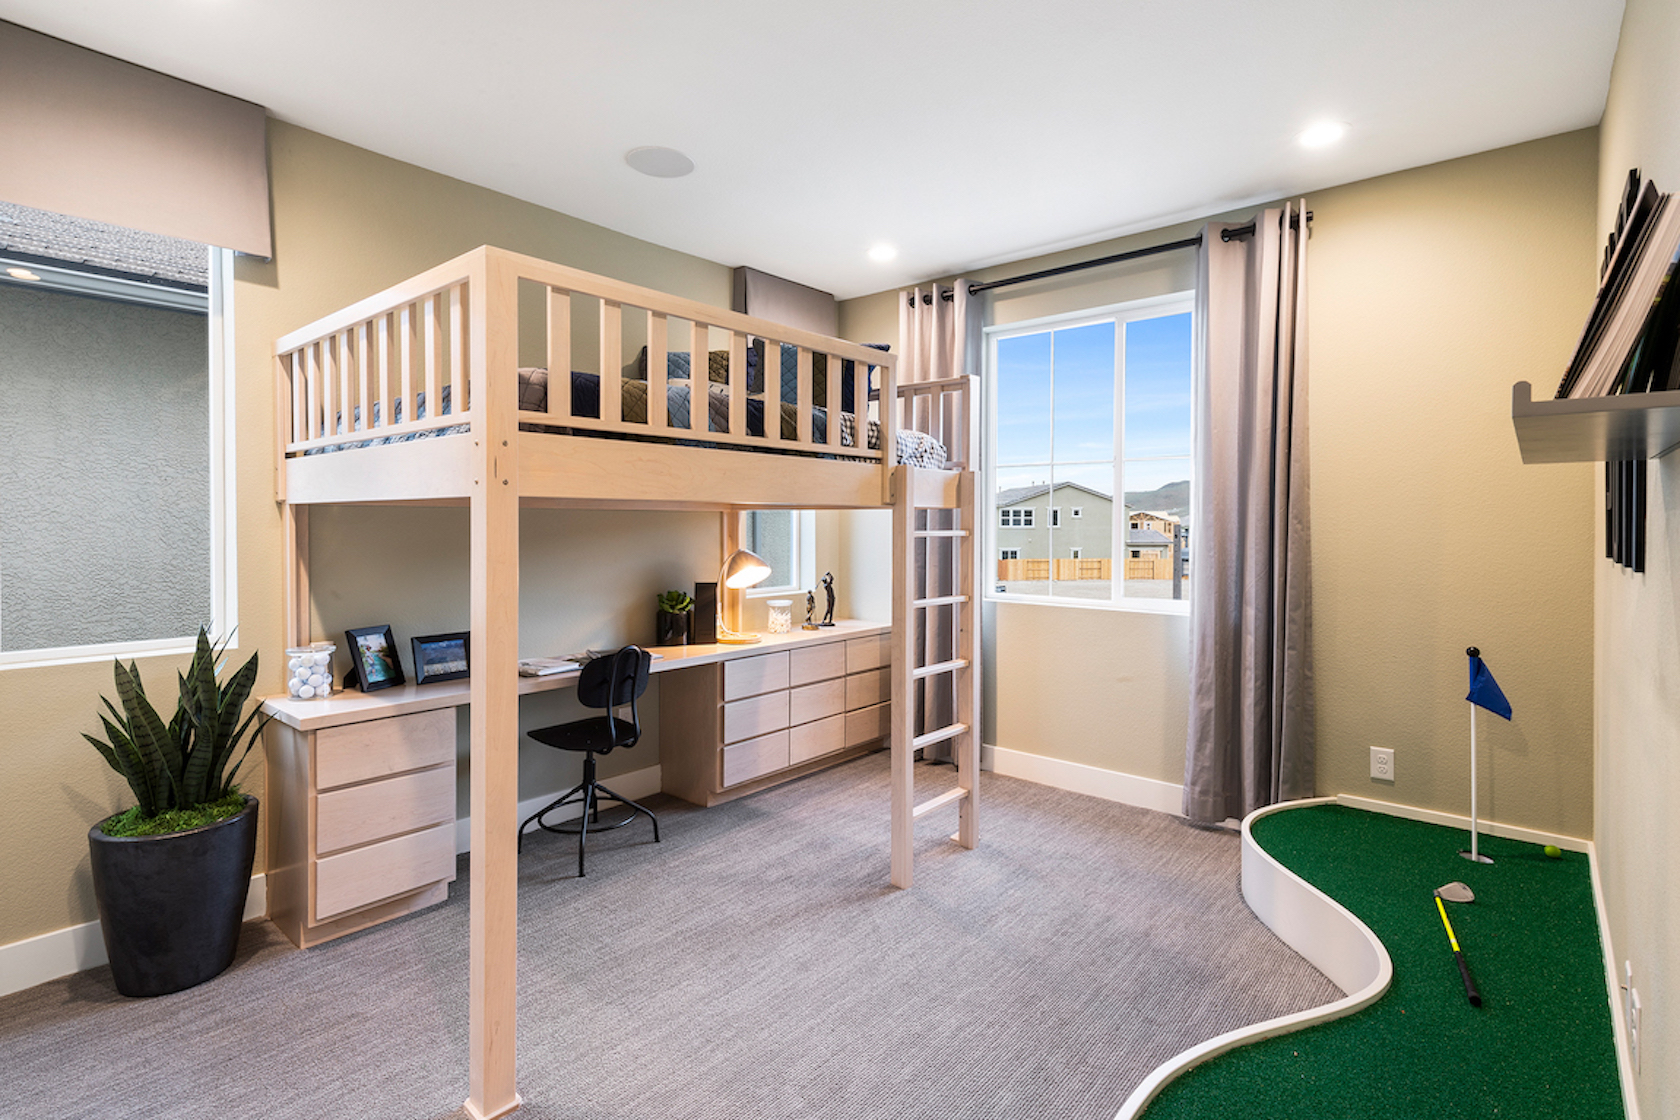 Teen bedroom with loft bed, workspace, and putting green